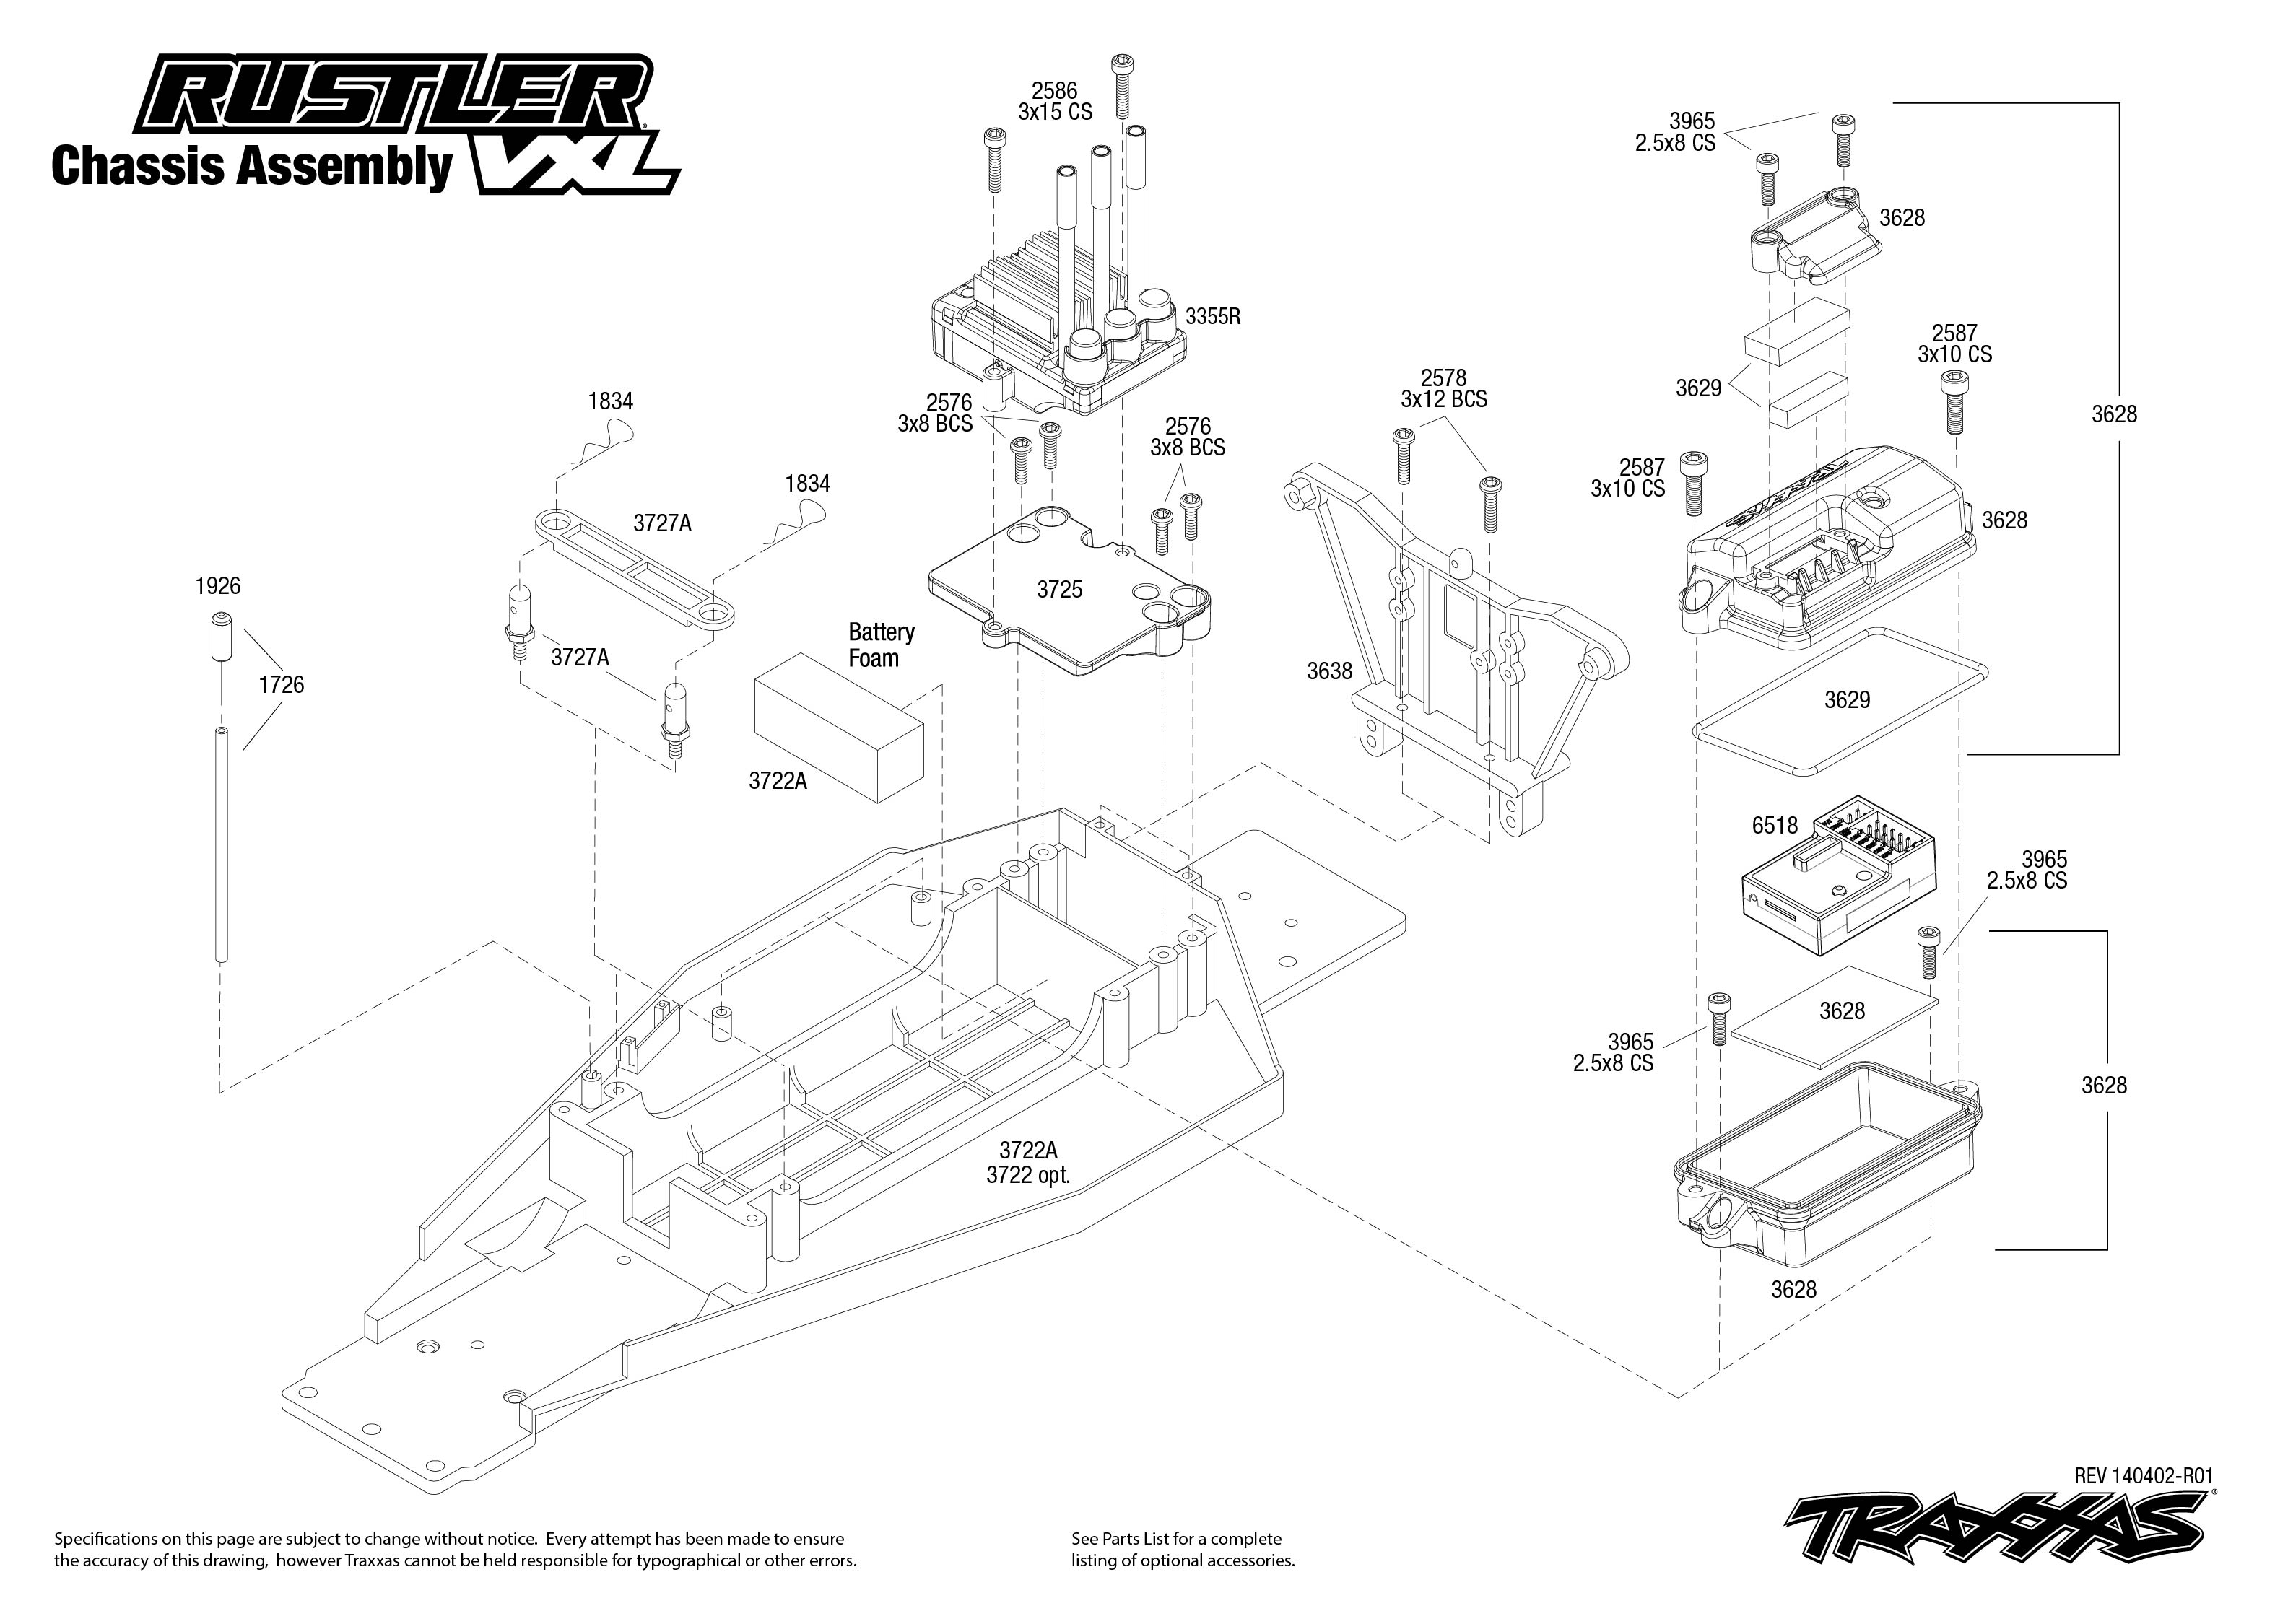 37076_Explodedviews 140402_37076 Chassis Assembly rustler vxl (37076) chassis assembly traxxas RC Wiring Diagrams at virtualis.co